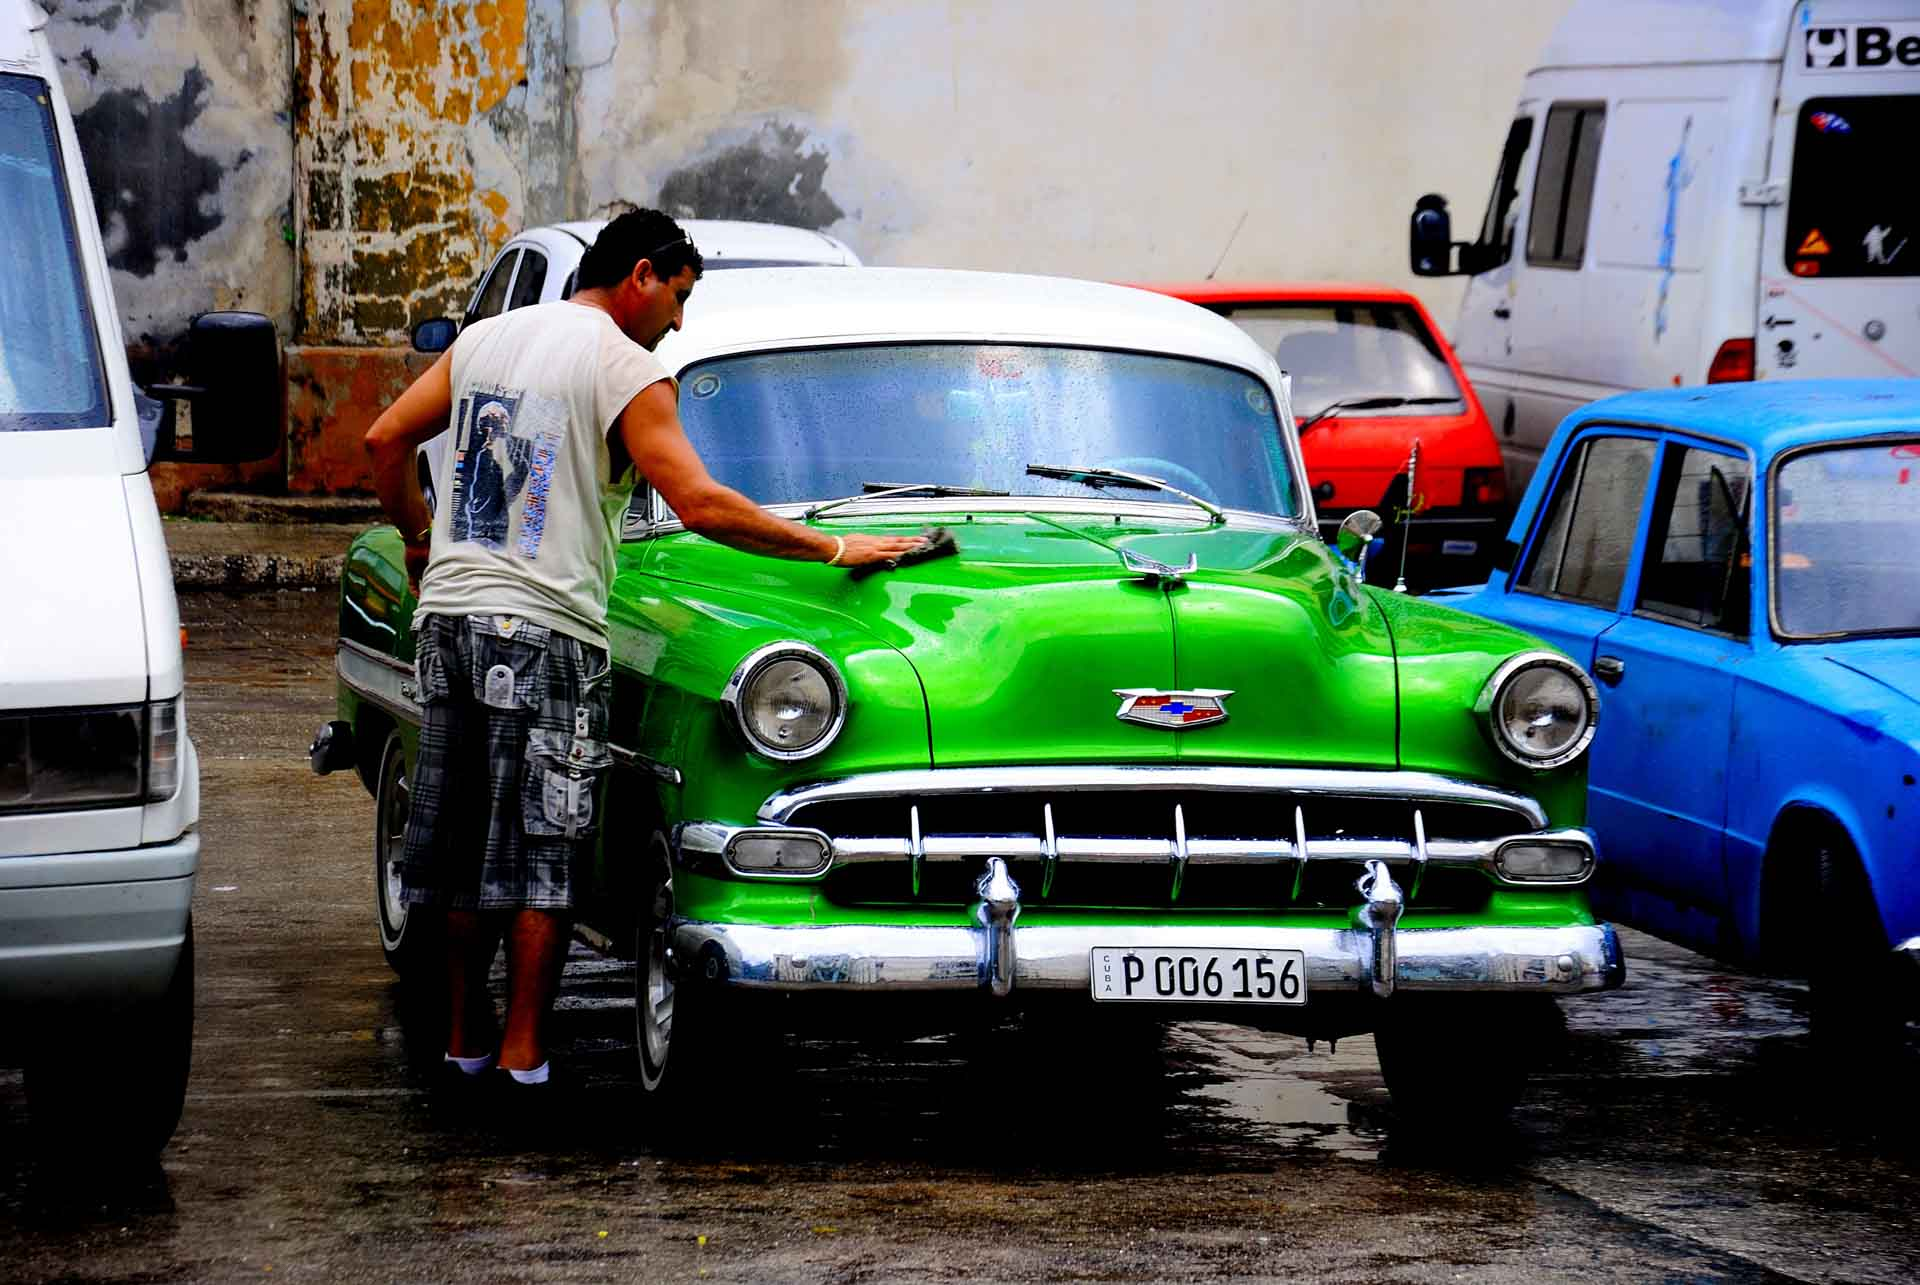 Havana Cuba Vintage Car 5, havana, cuba, pescart, photo blog, travel blog, blog, photo travel blog, enrico pescantini, pescantini